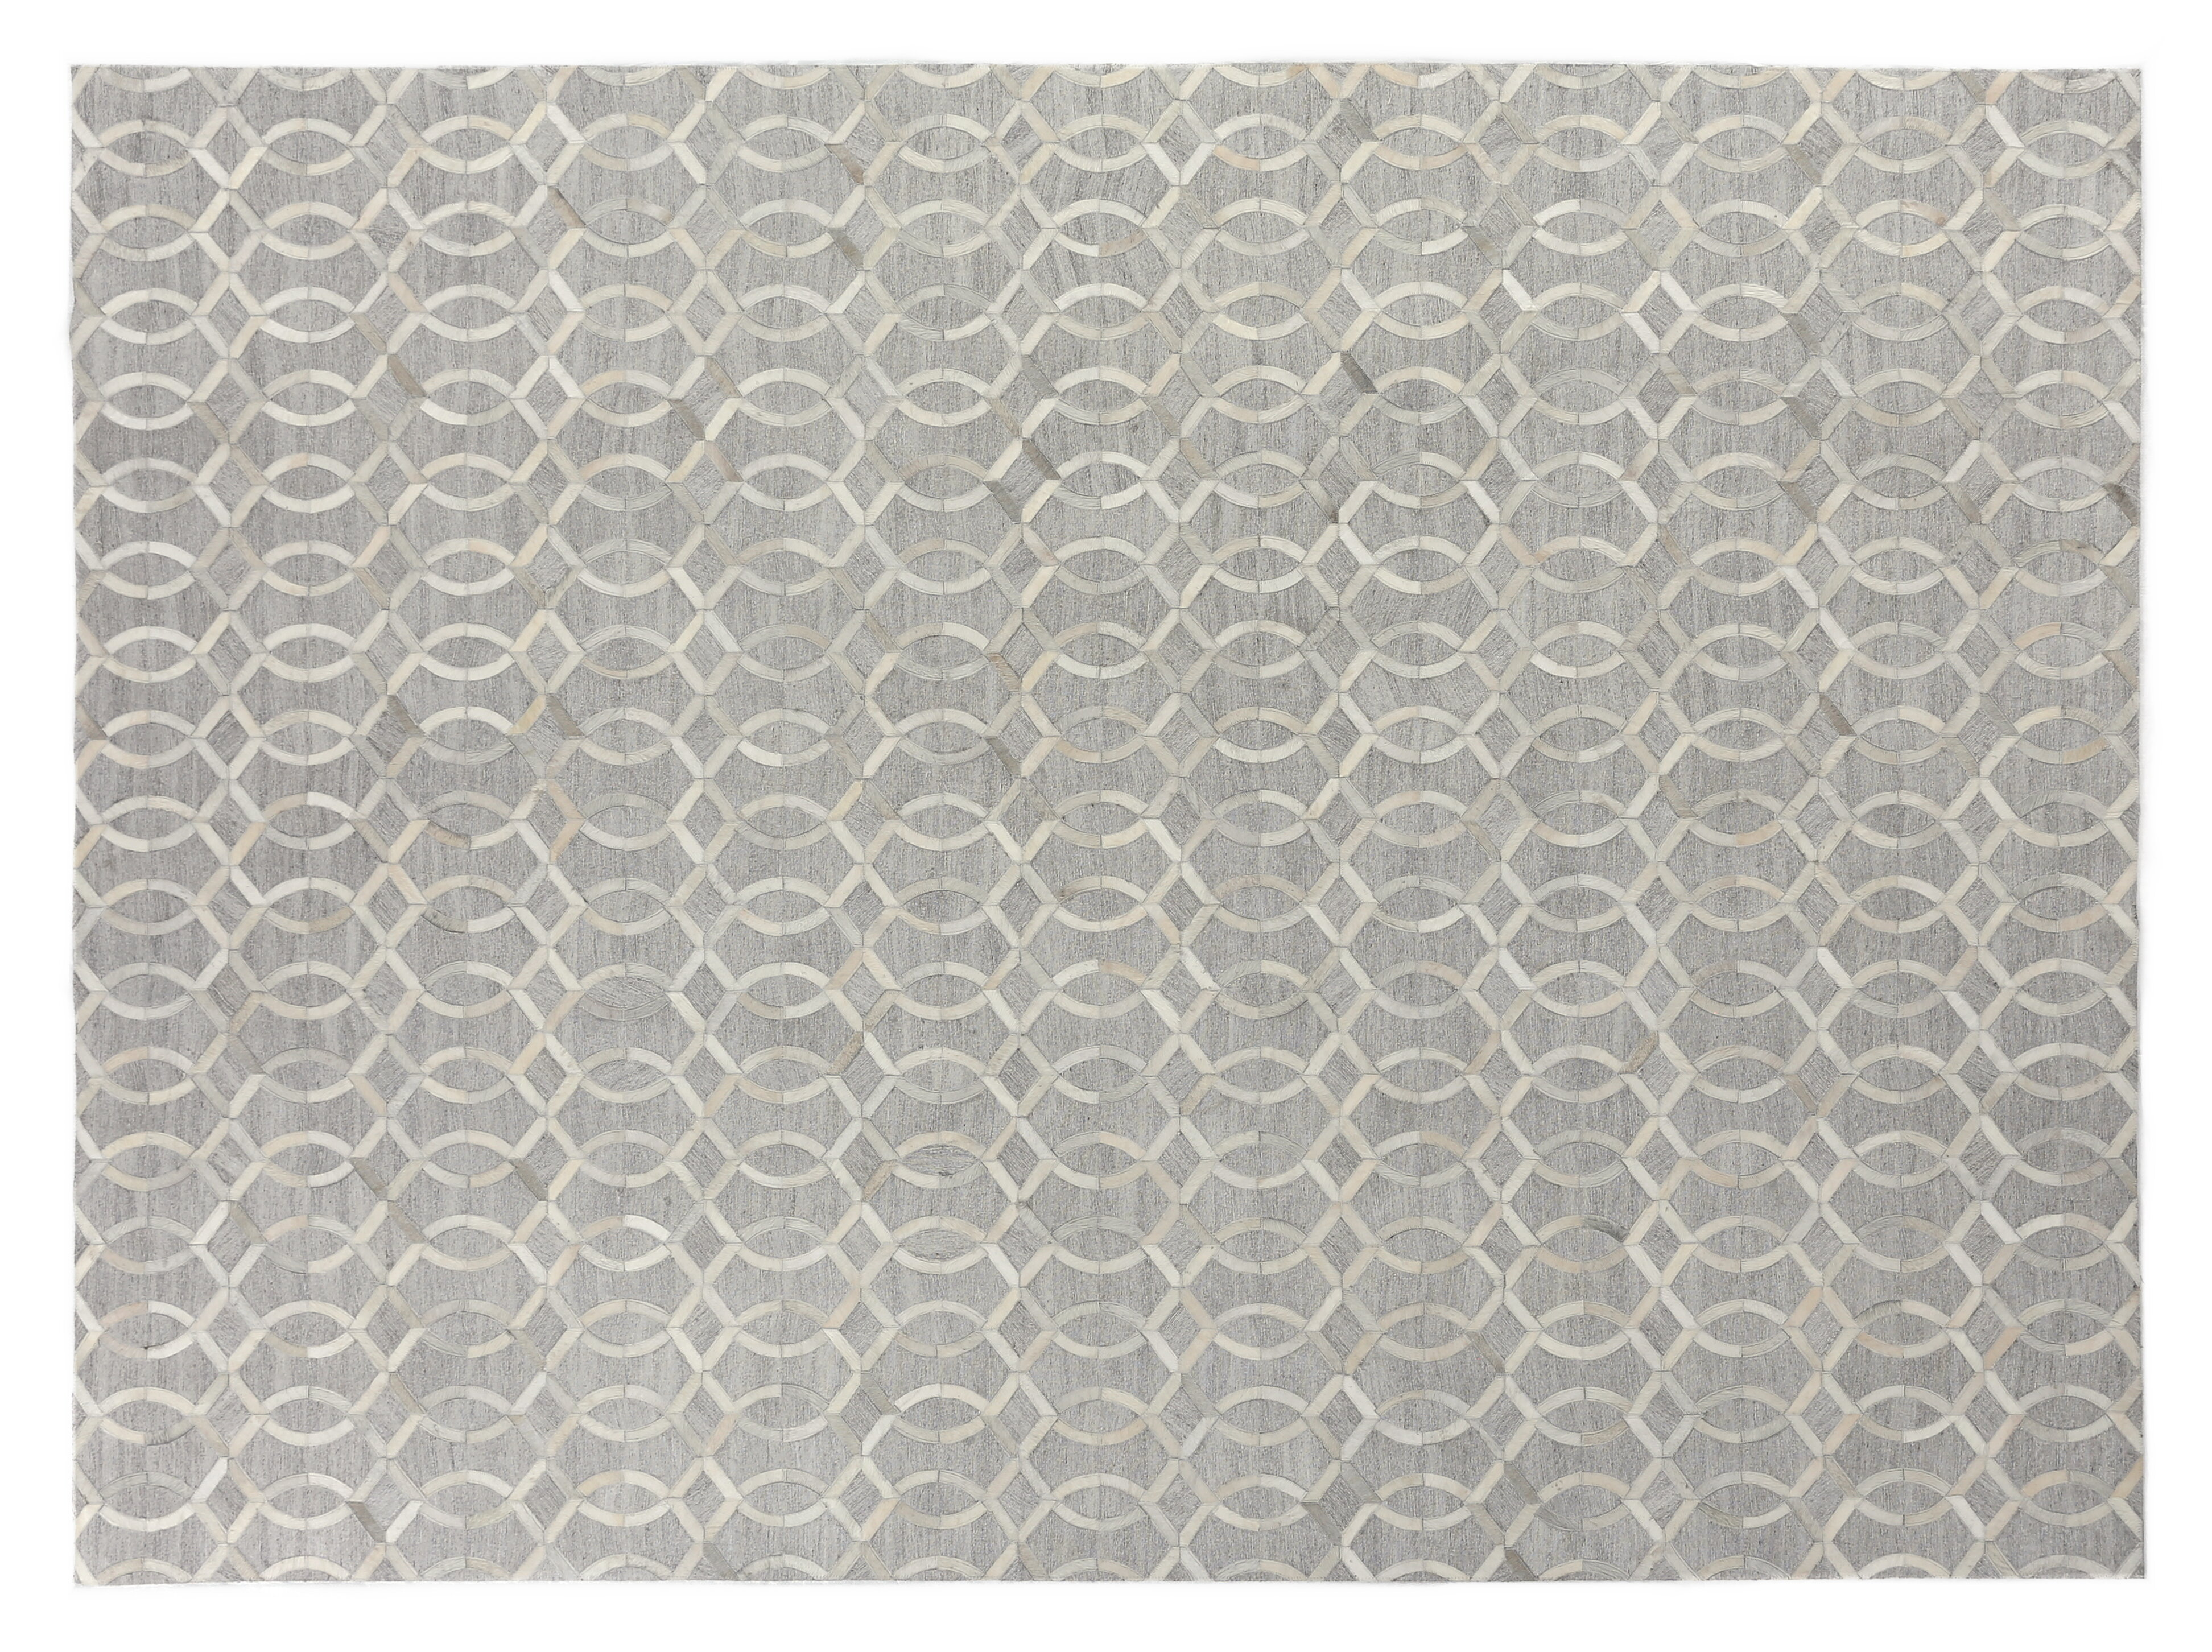 Ivory Cream Leather Area Rugs You Ll Love In 2021 Wayfair